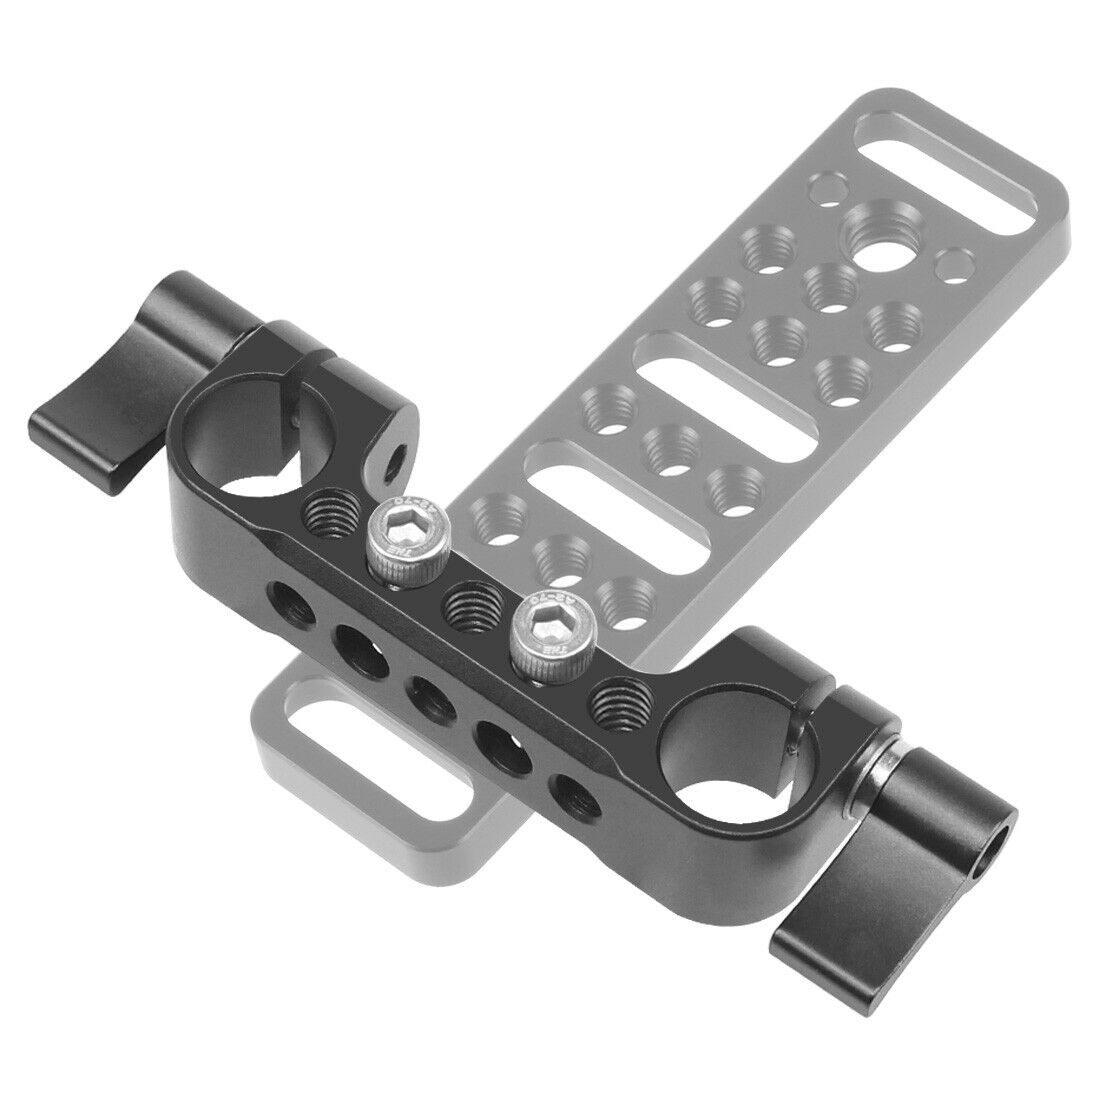 FEICHAO Universal 15mm Rail Lock Rod Clamp Double Connector Knob for DSLR Camera